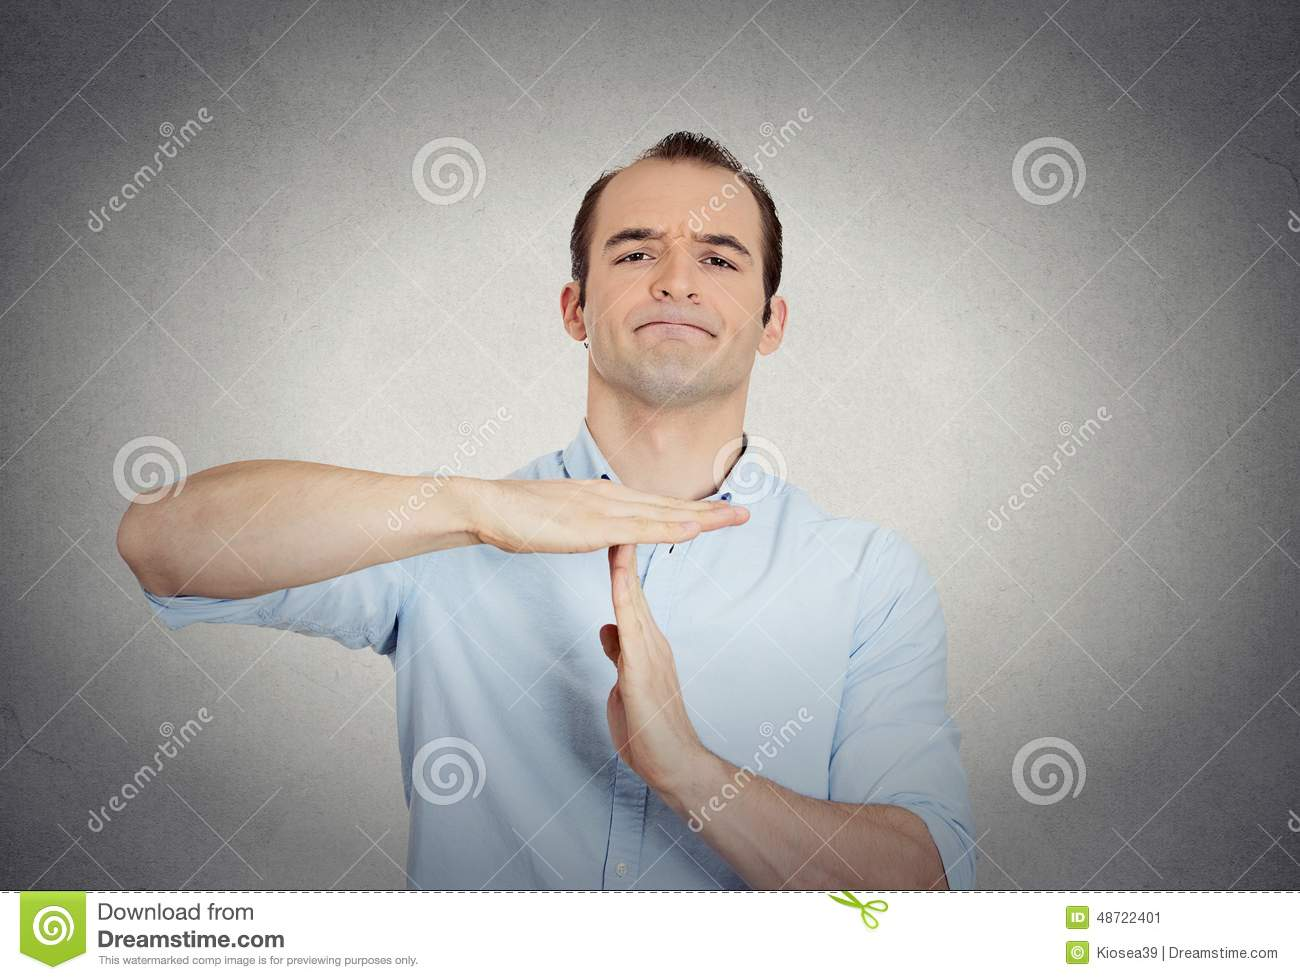 Erious confident business man showing time out gesture